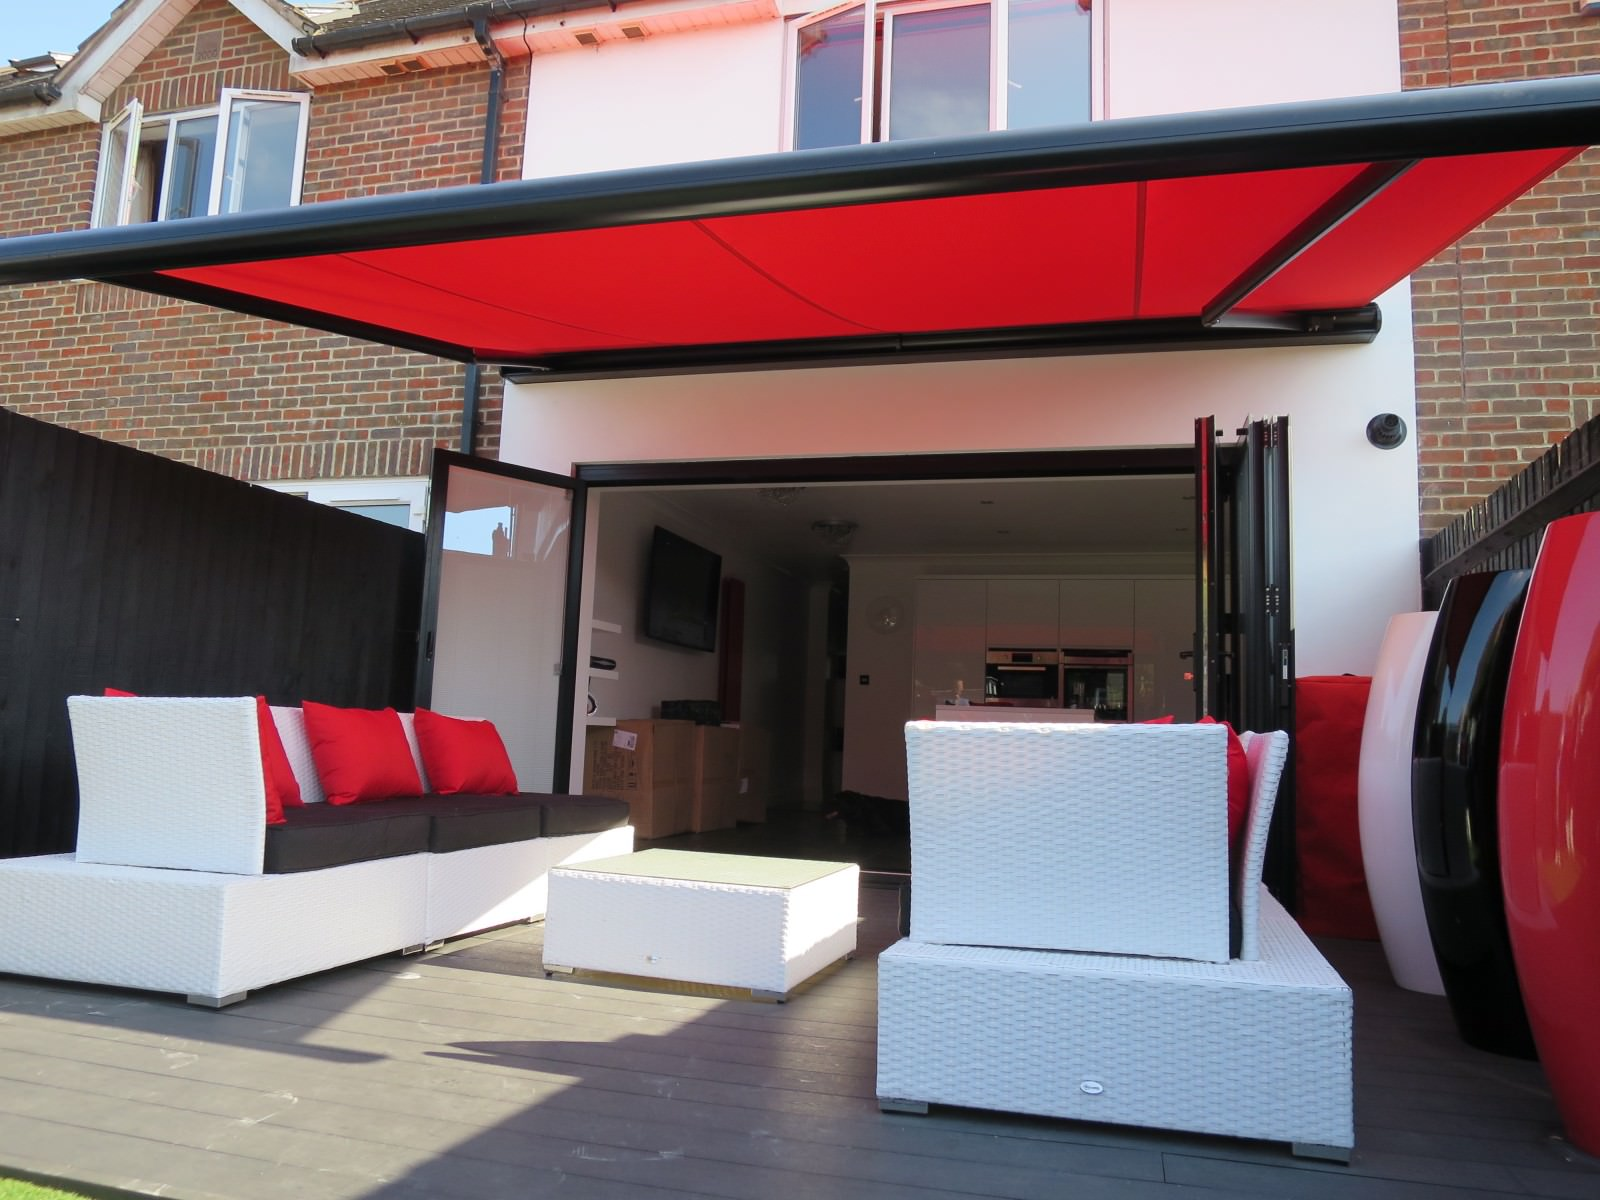 Red Garden Awning in Gosport Shuttersouth Awningsouth